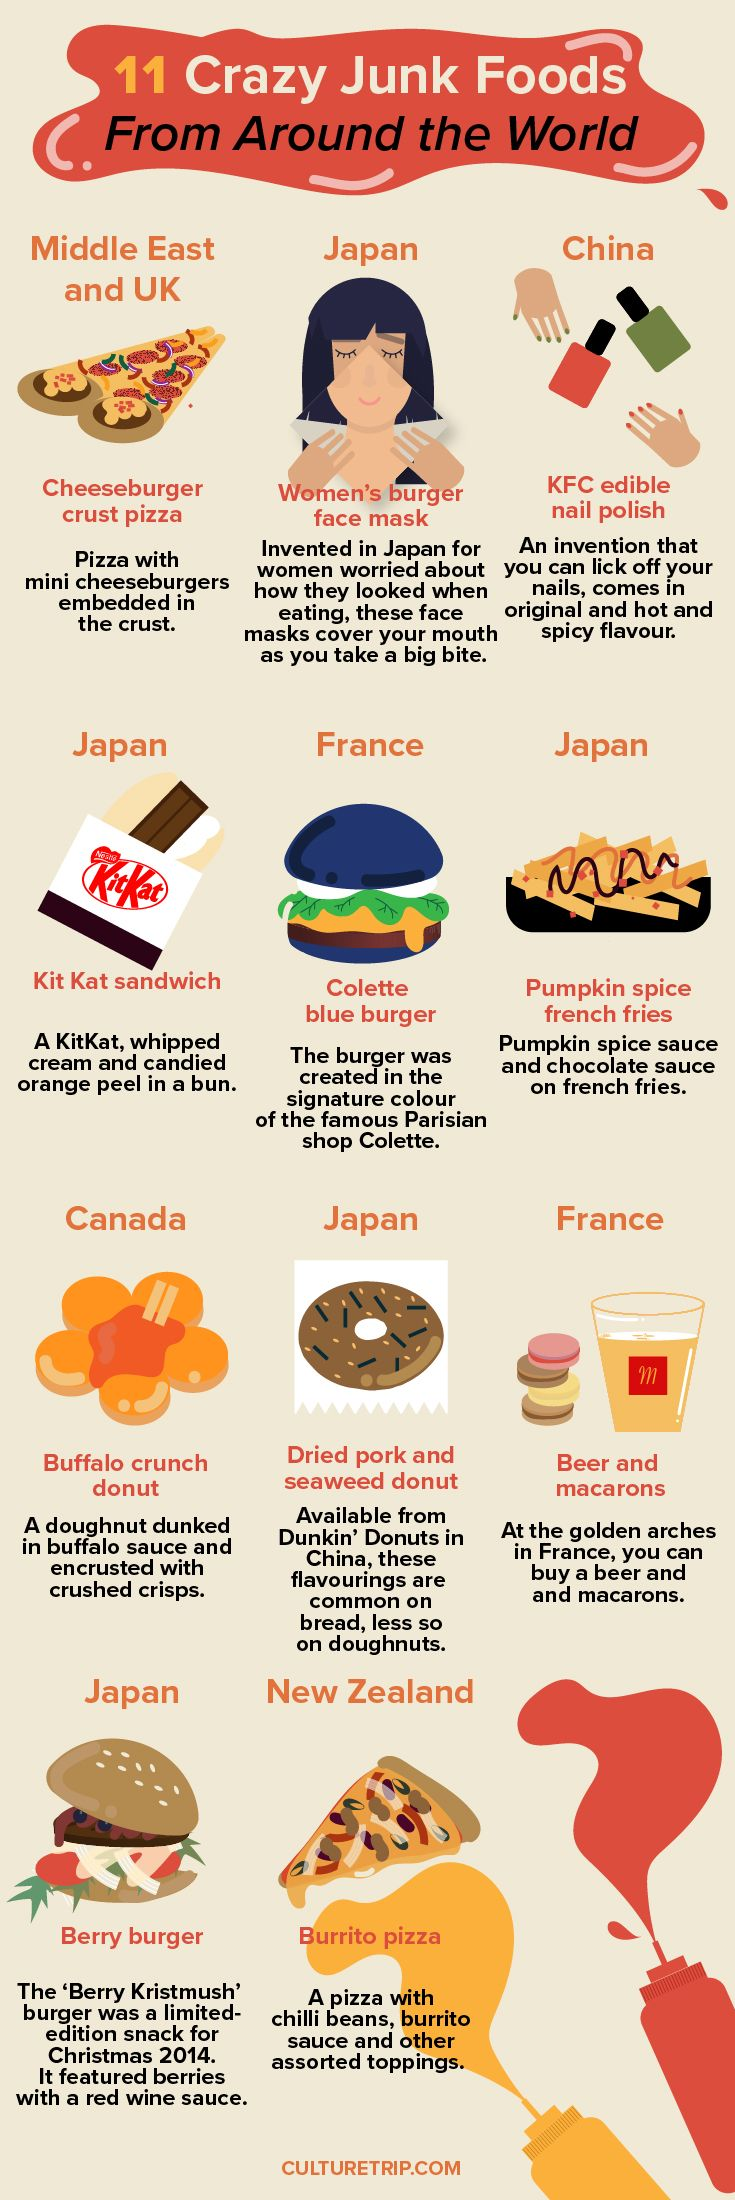 11 Crazy Junk Foods From Around The World You'll Secretly Want | Junk food, fast food, crazy, amazing, facts, Japan, China, UK, New Zealand, illustrations, ideas, recipes, unhealthy